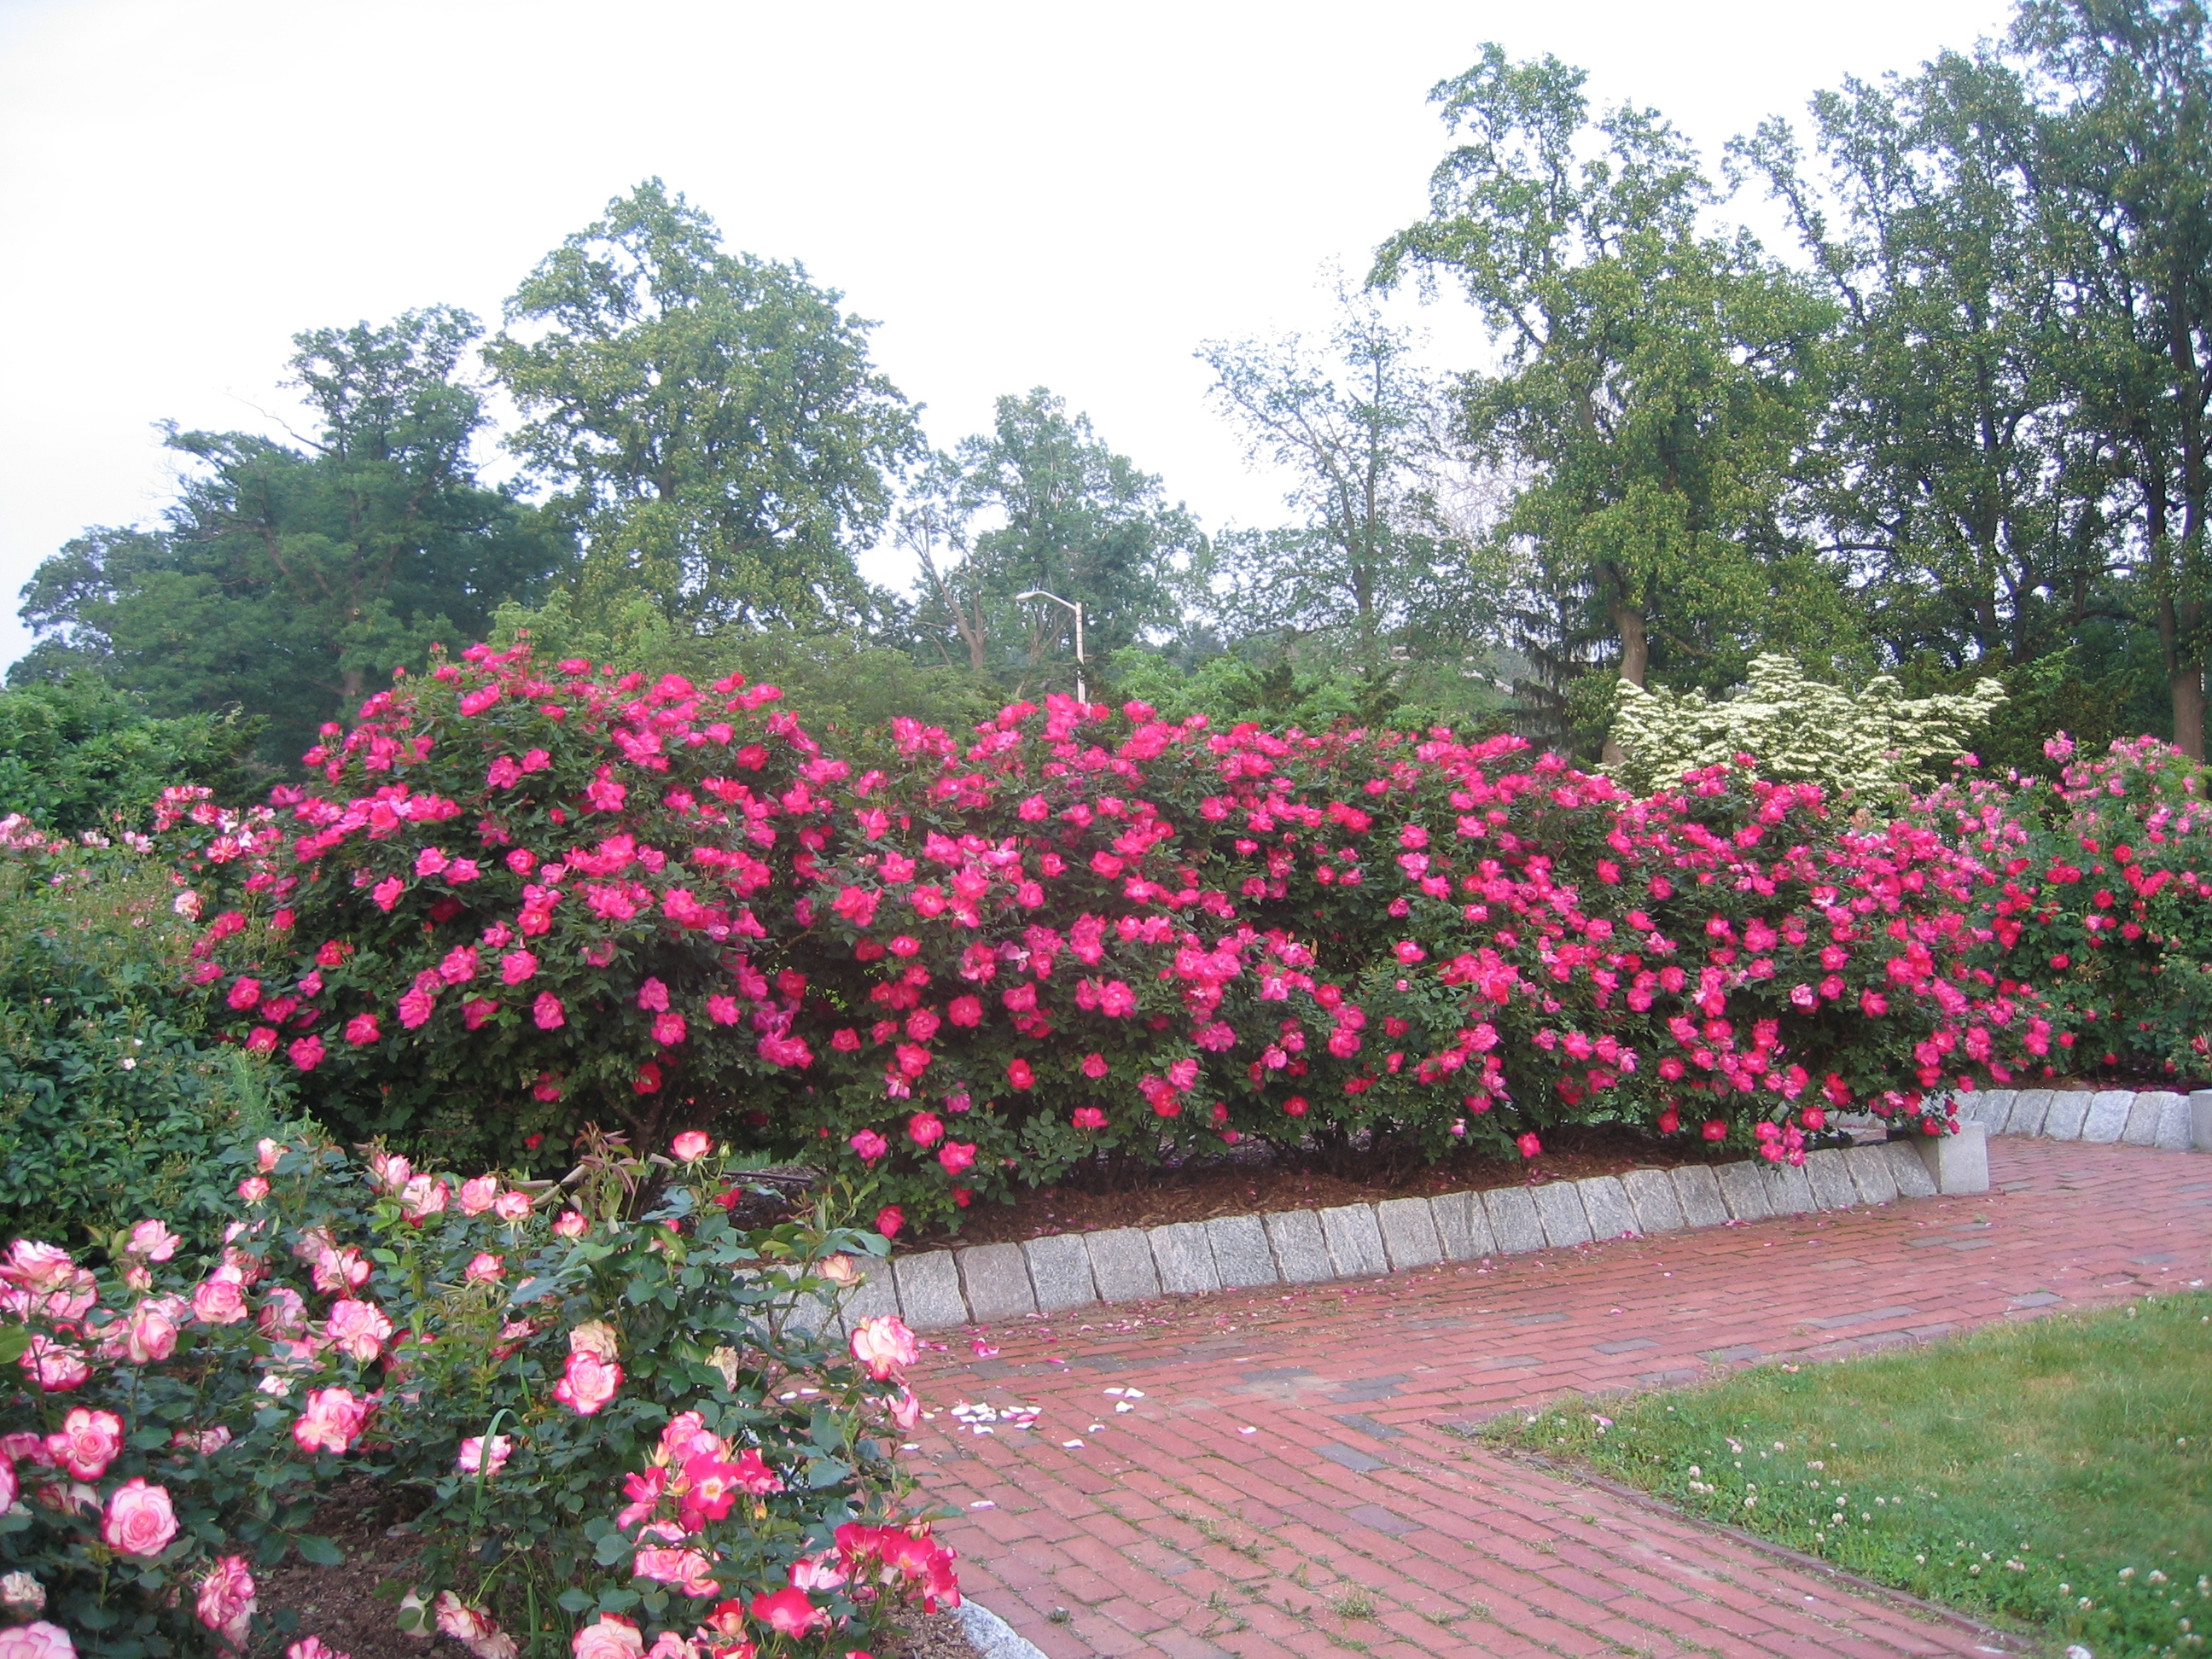 Traditional Sc Knockout Pruning Roses Henry Homr When To Prune Knockout Roses Alabama When To Prune Knockout Roses houzz-02 When To Prune Knockout Roses